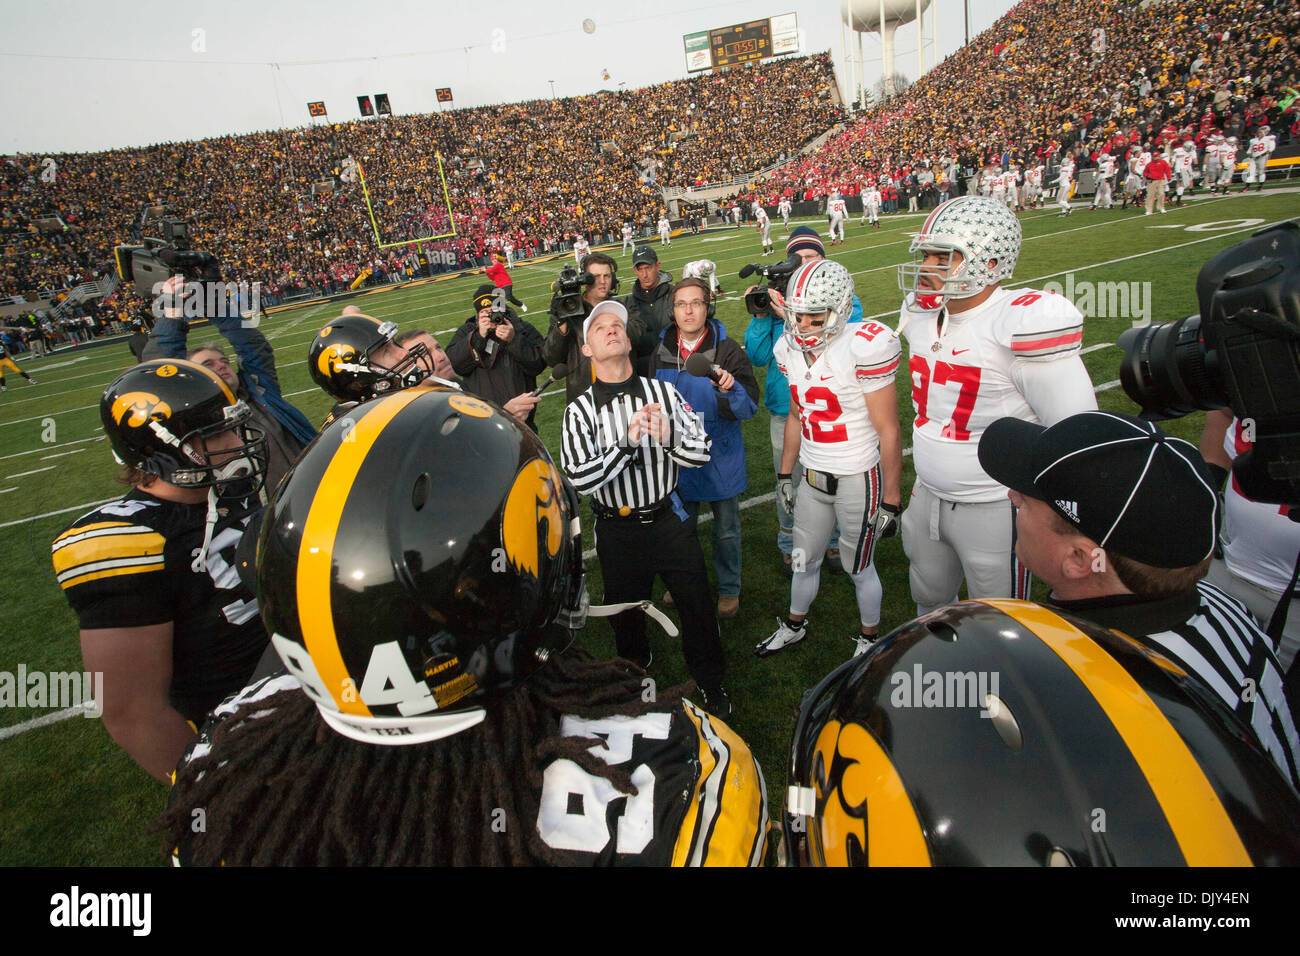 Nov. 20, 2010 - Iowa City, Iowa, United States of America - The captains of the Iowa Hawkeyes and Ohio State Buckeyes look on during the coin flip just prior to kick off of their NCAA Football game on Nov, 20, 2010 at Kinnick Stadium in Iowa, City, Ia (Credit Image: © Louis Brems/Southcreek Global/ZUMAPRESS.com) - Stock Image